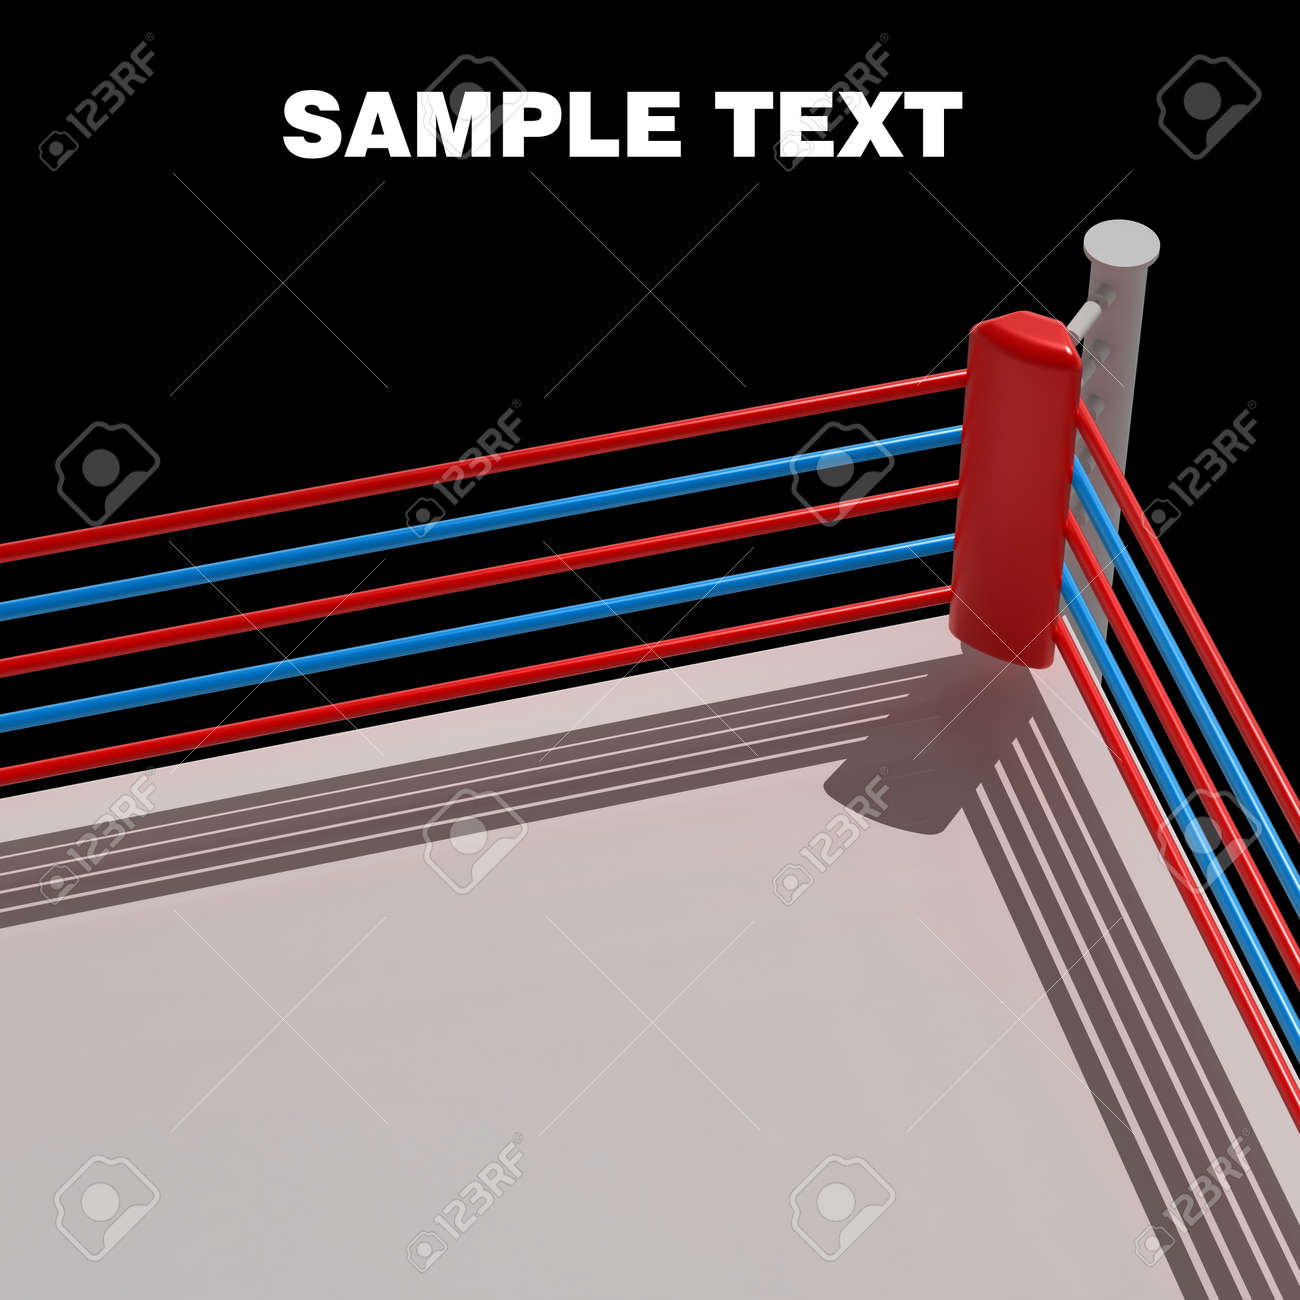 Boxing ring background - 3d render high resolution Stock Photo - 12980326